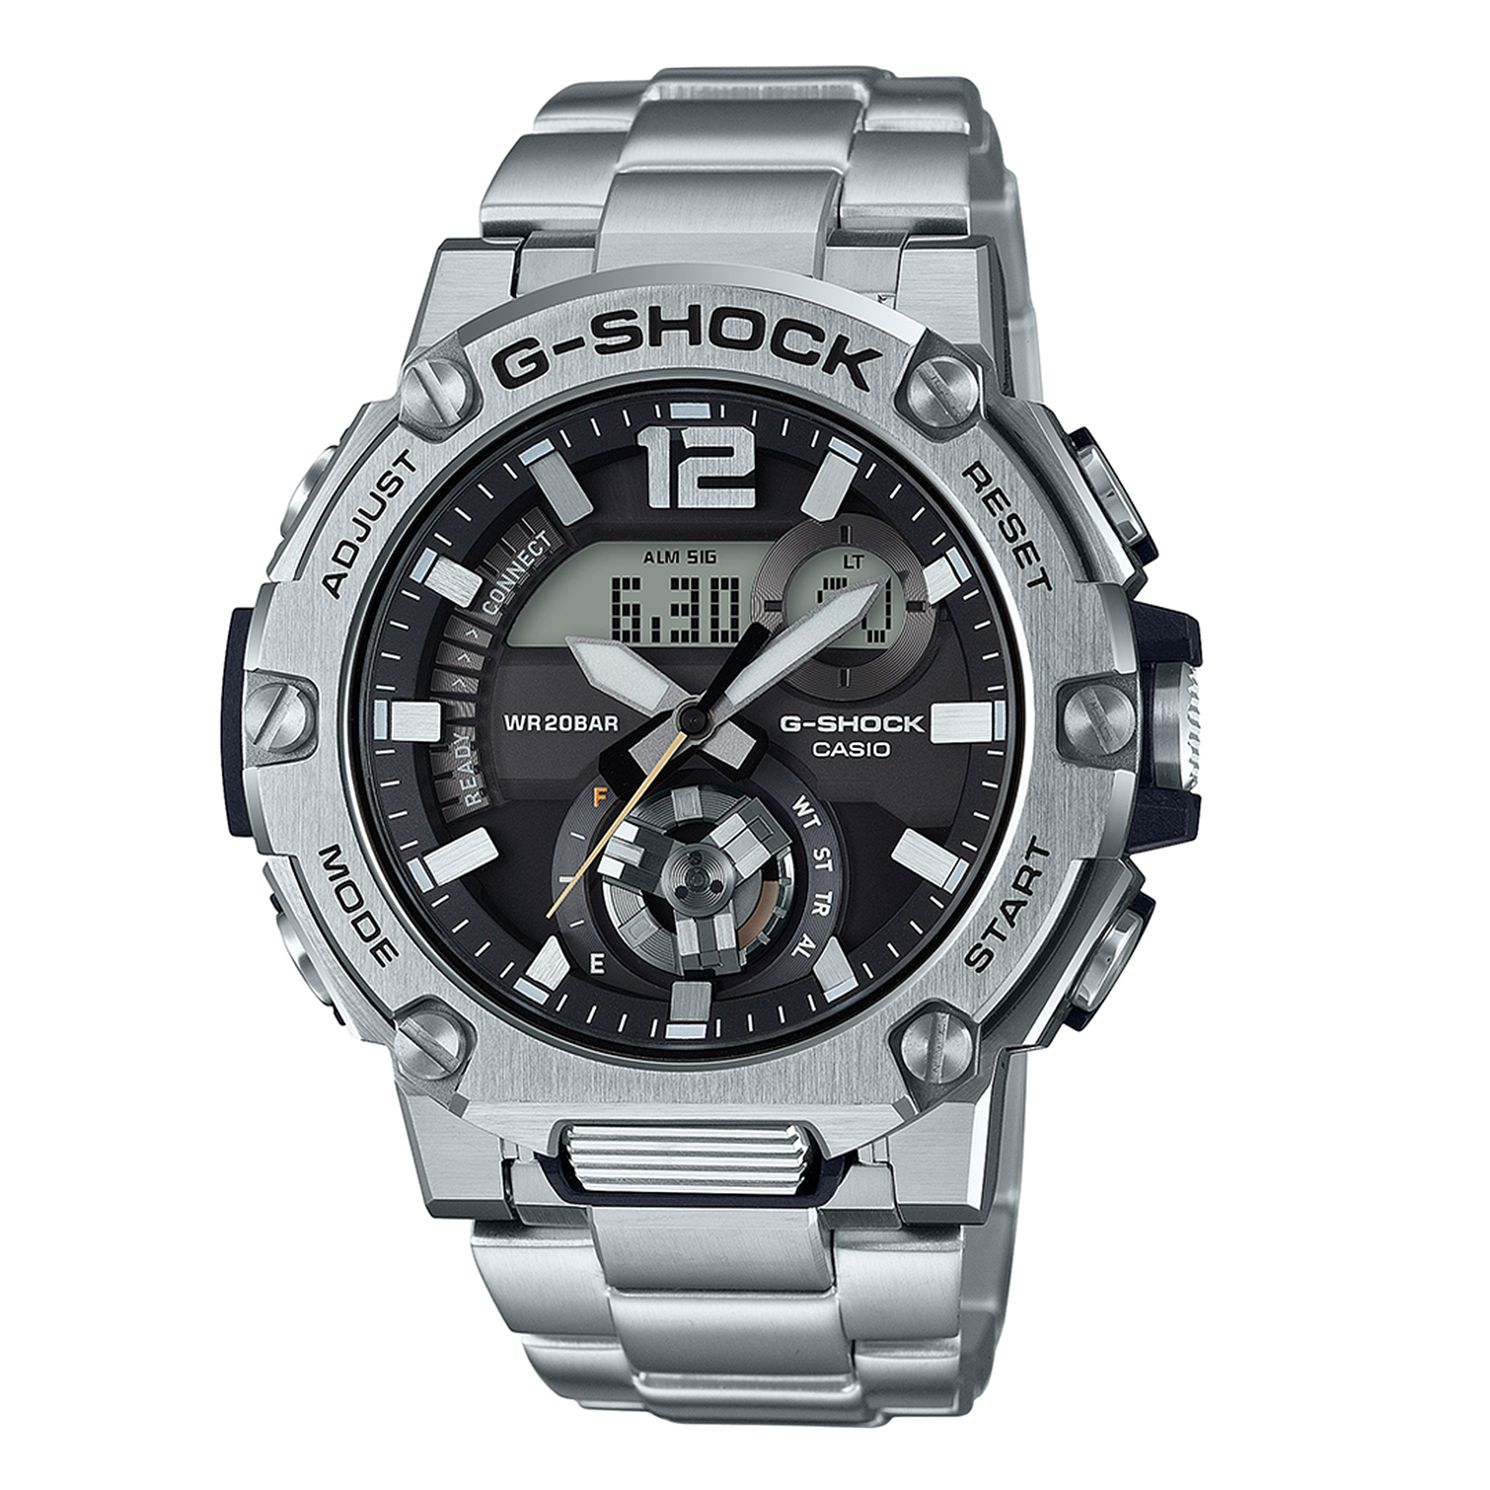 Casio G-Steel GST-B300S-1AER Black Resin Strap Watch - Product number 1094467